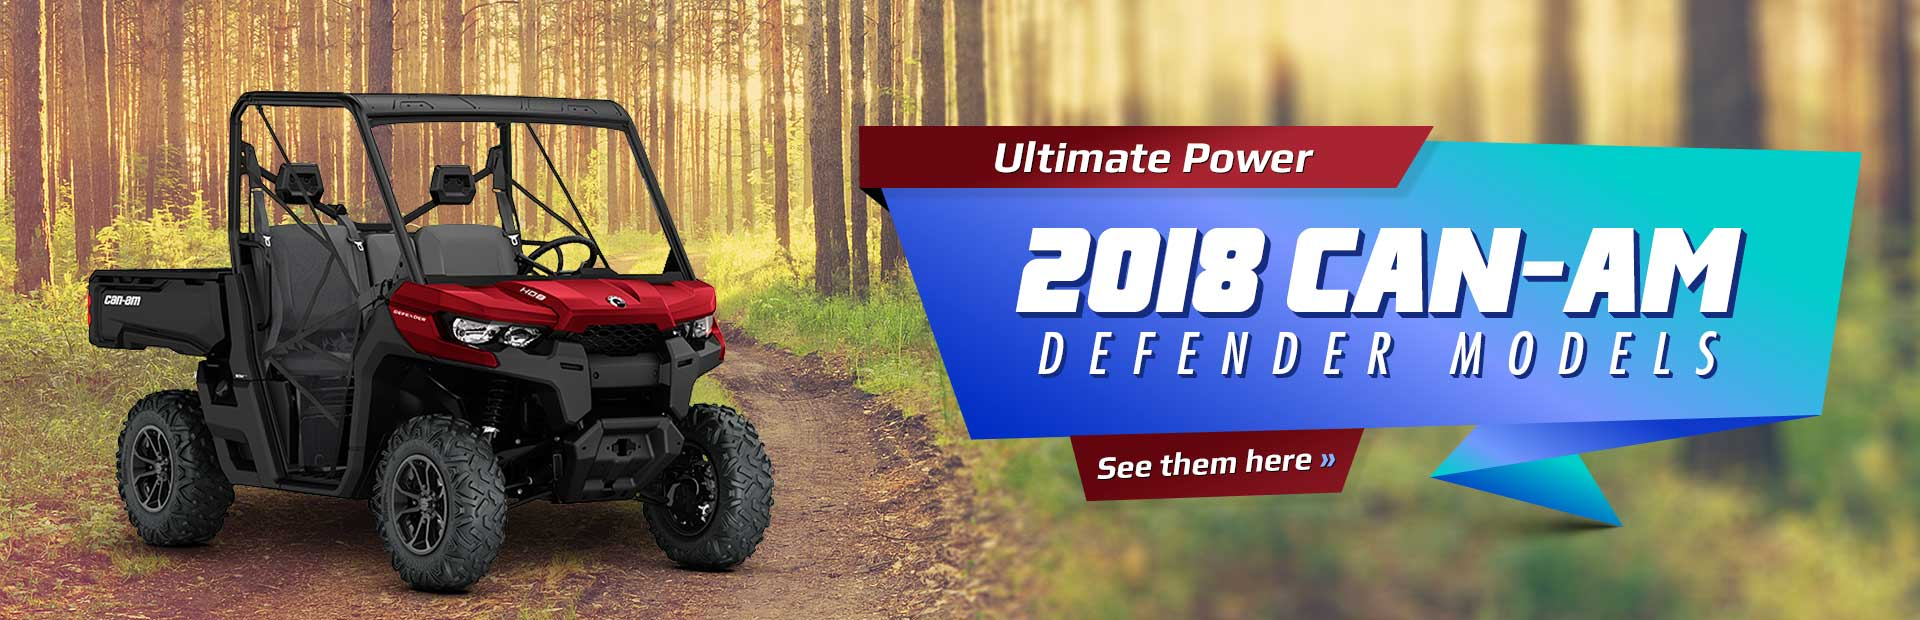 2018 Can-Am Defender Models: Click here to view the lineup.